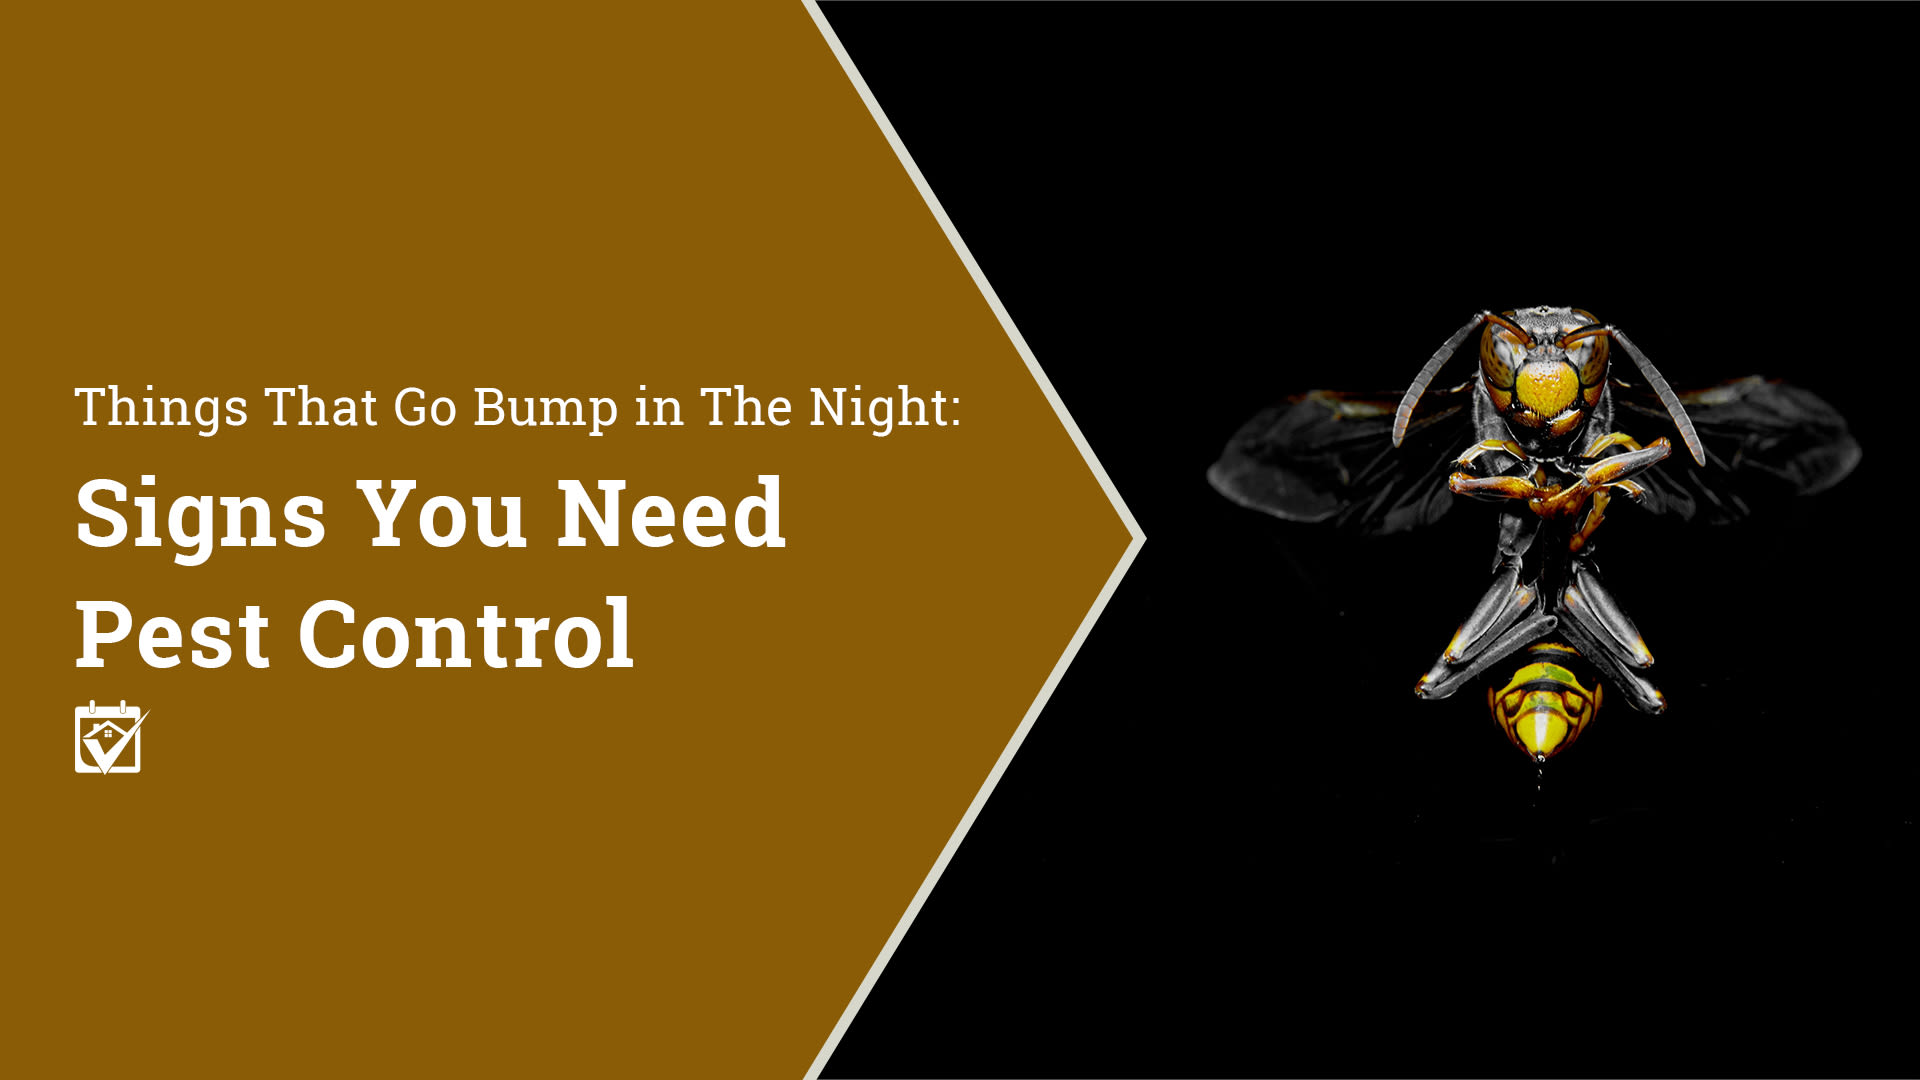 Signs you need pest control